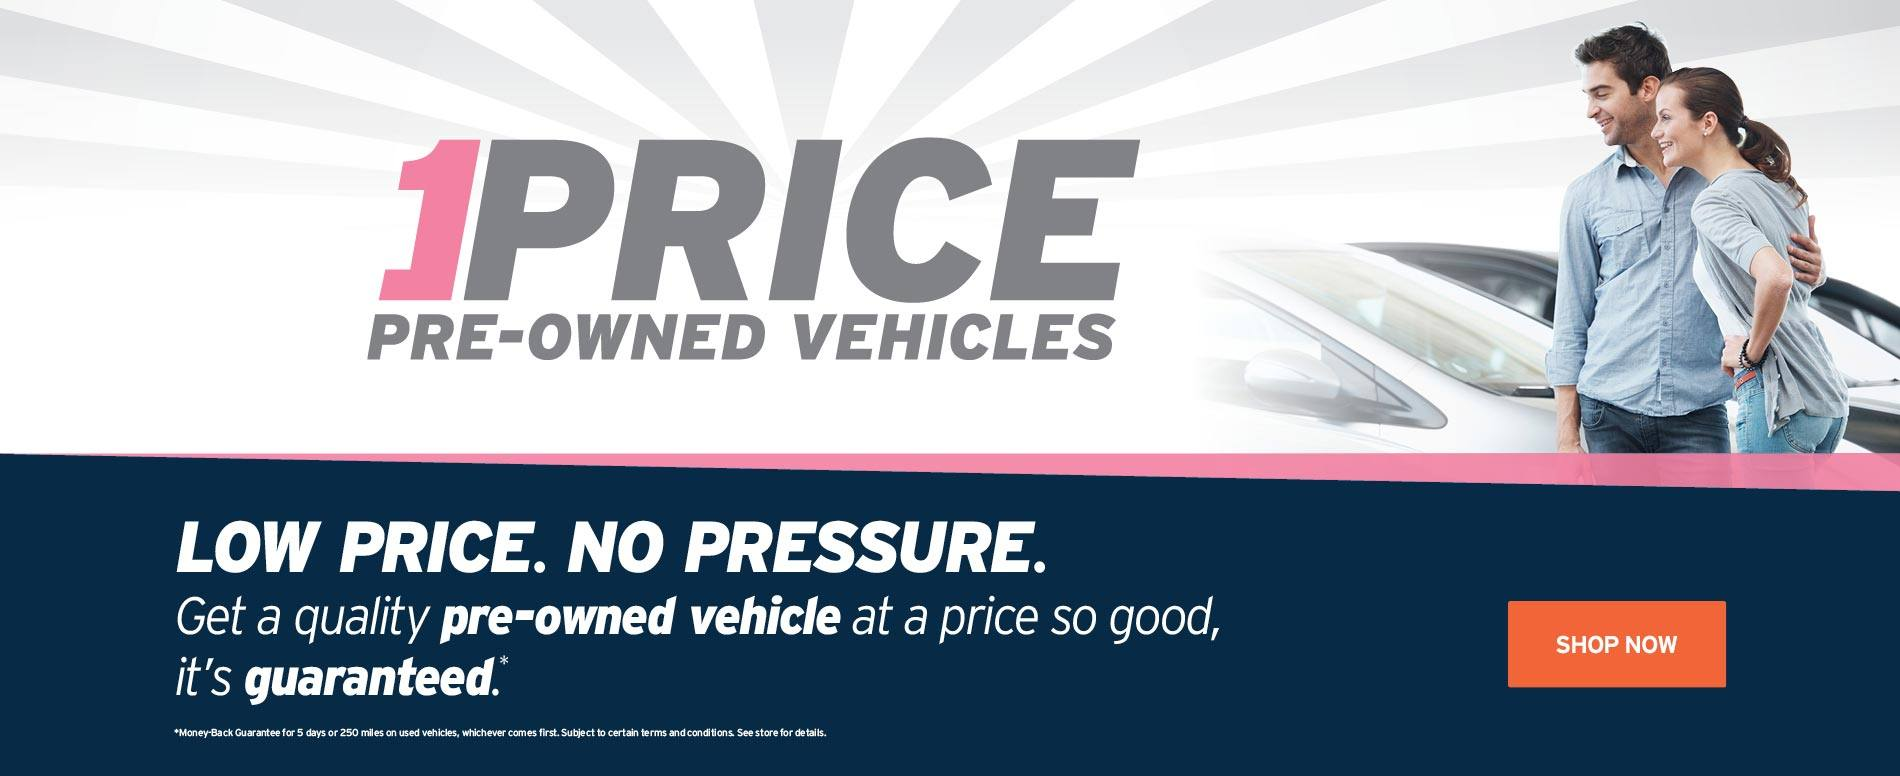 1Price Pre-Owned Vehicles For Sale